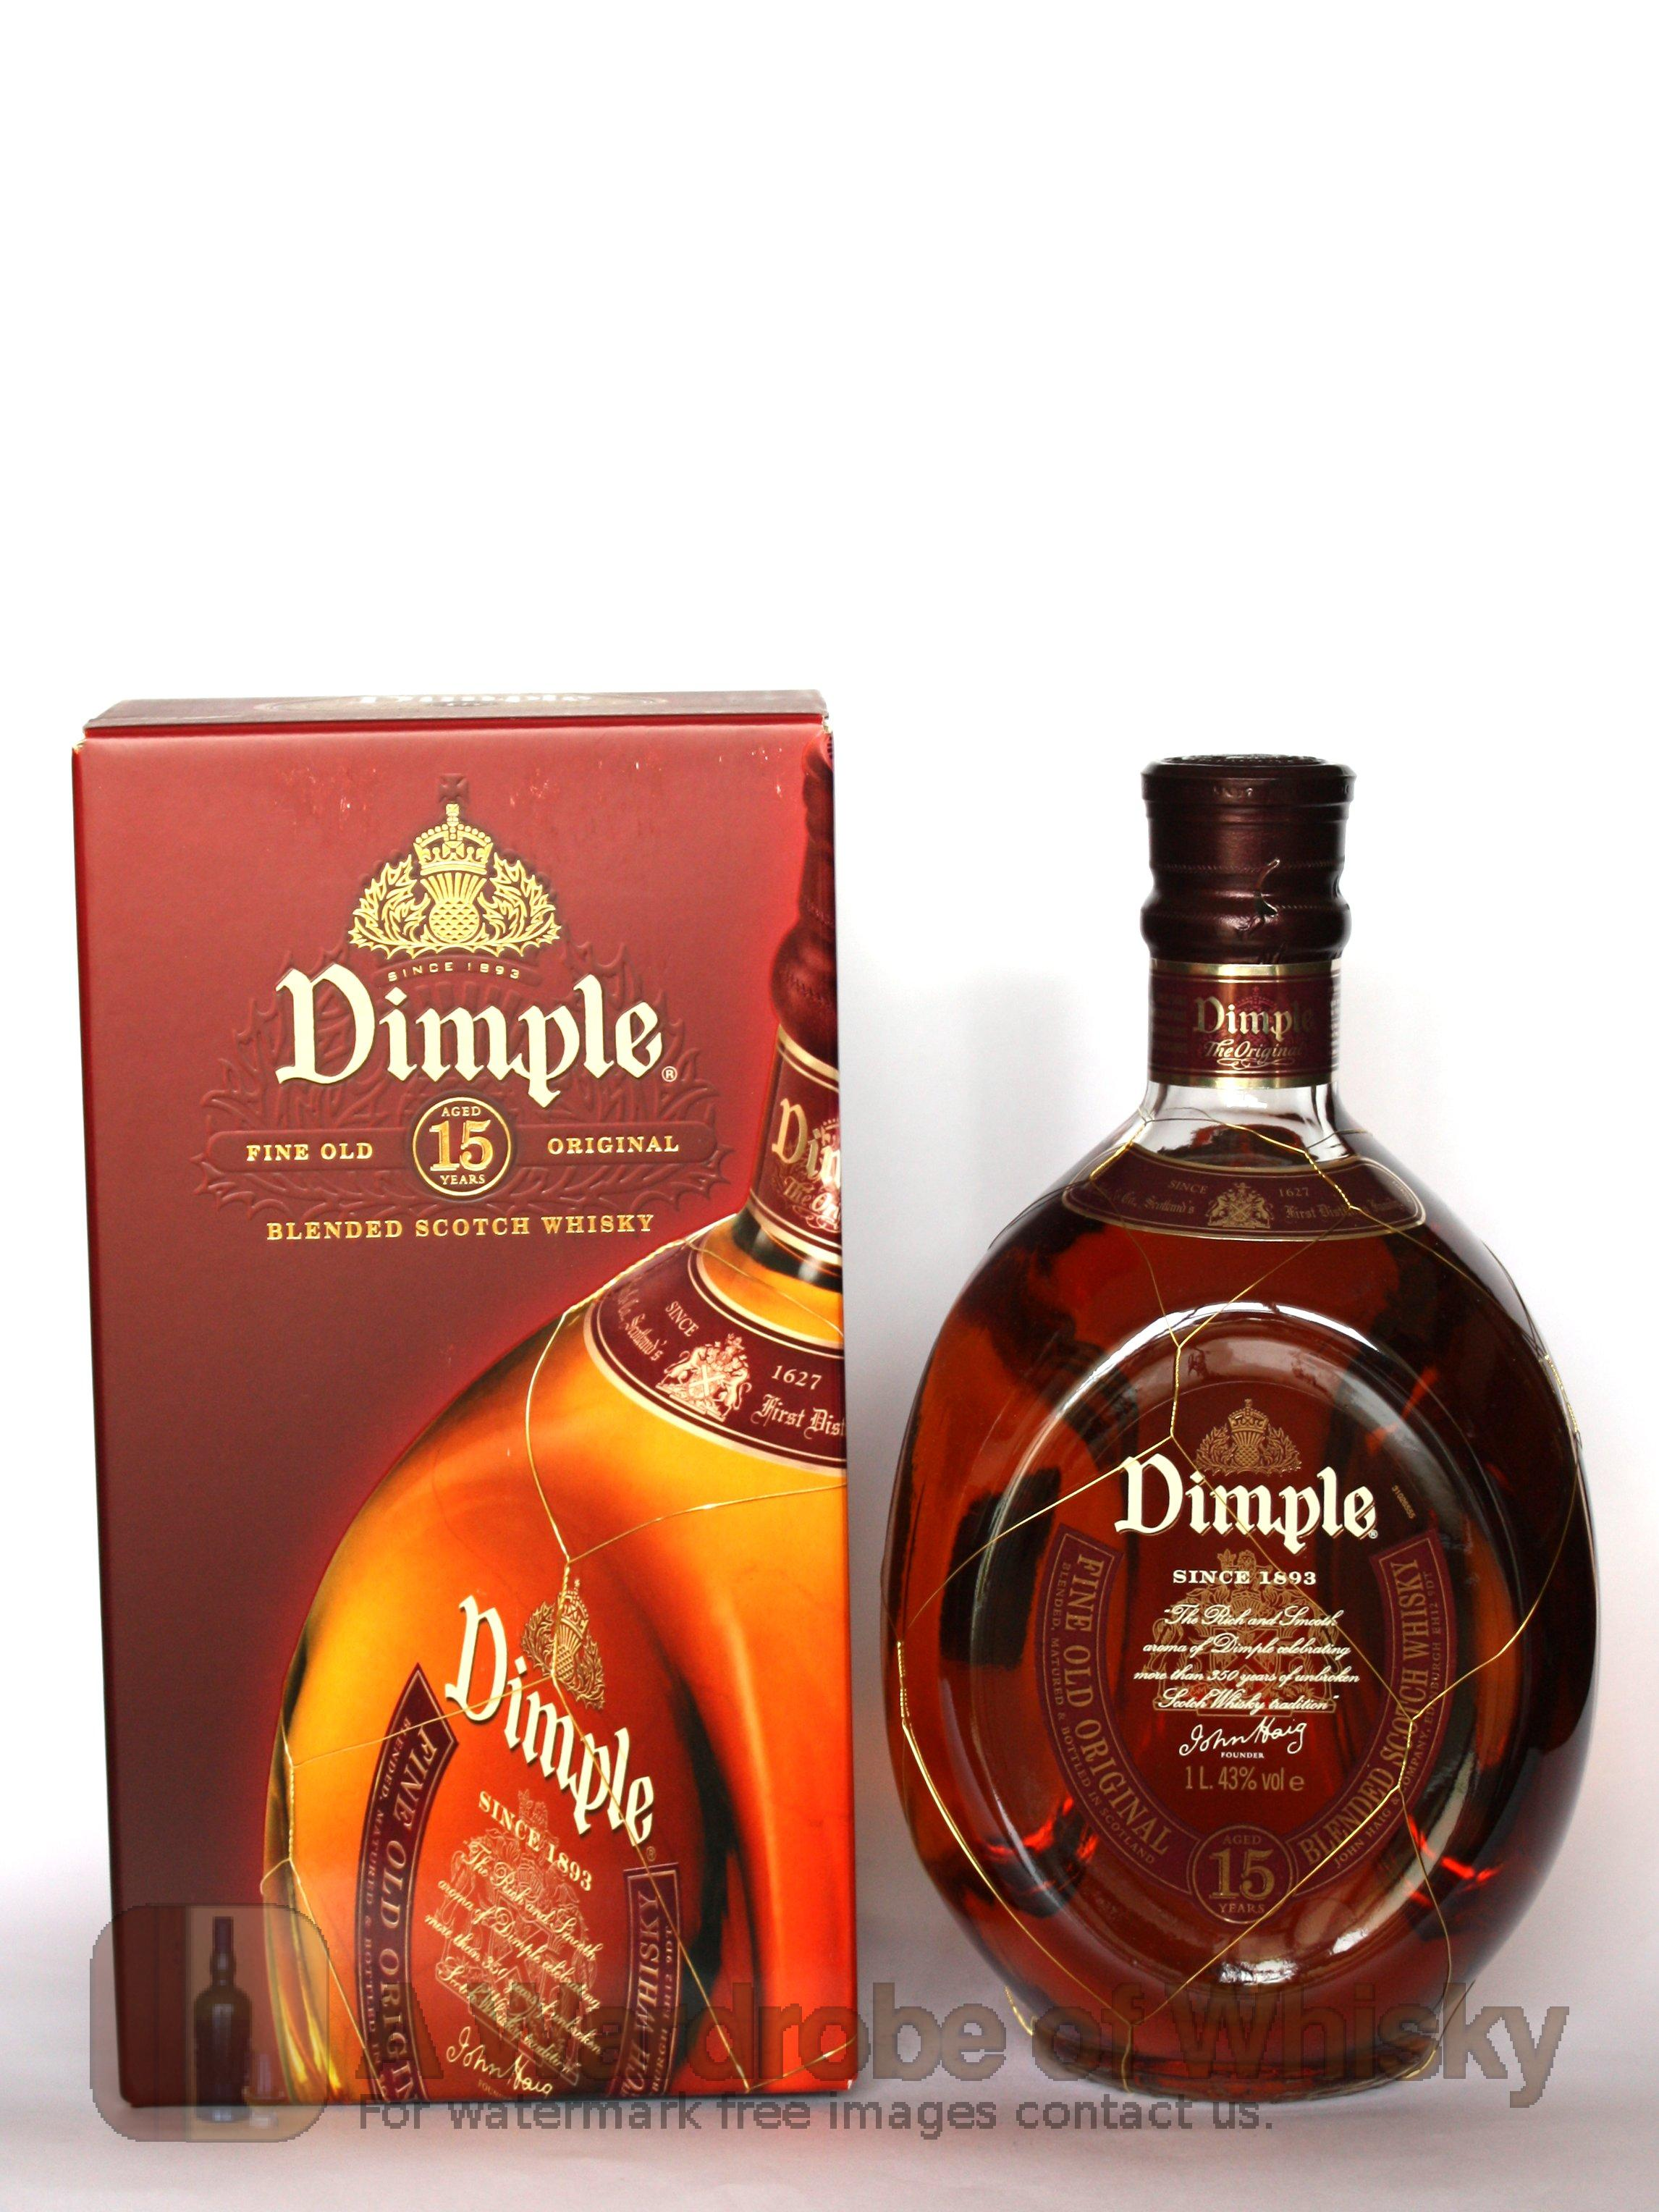 Buy Dimple Pinch Red Ceramic Decanter 15 Year Old Online: Buy Dimple 15 Year Blended Whisky - Dimple